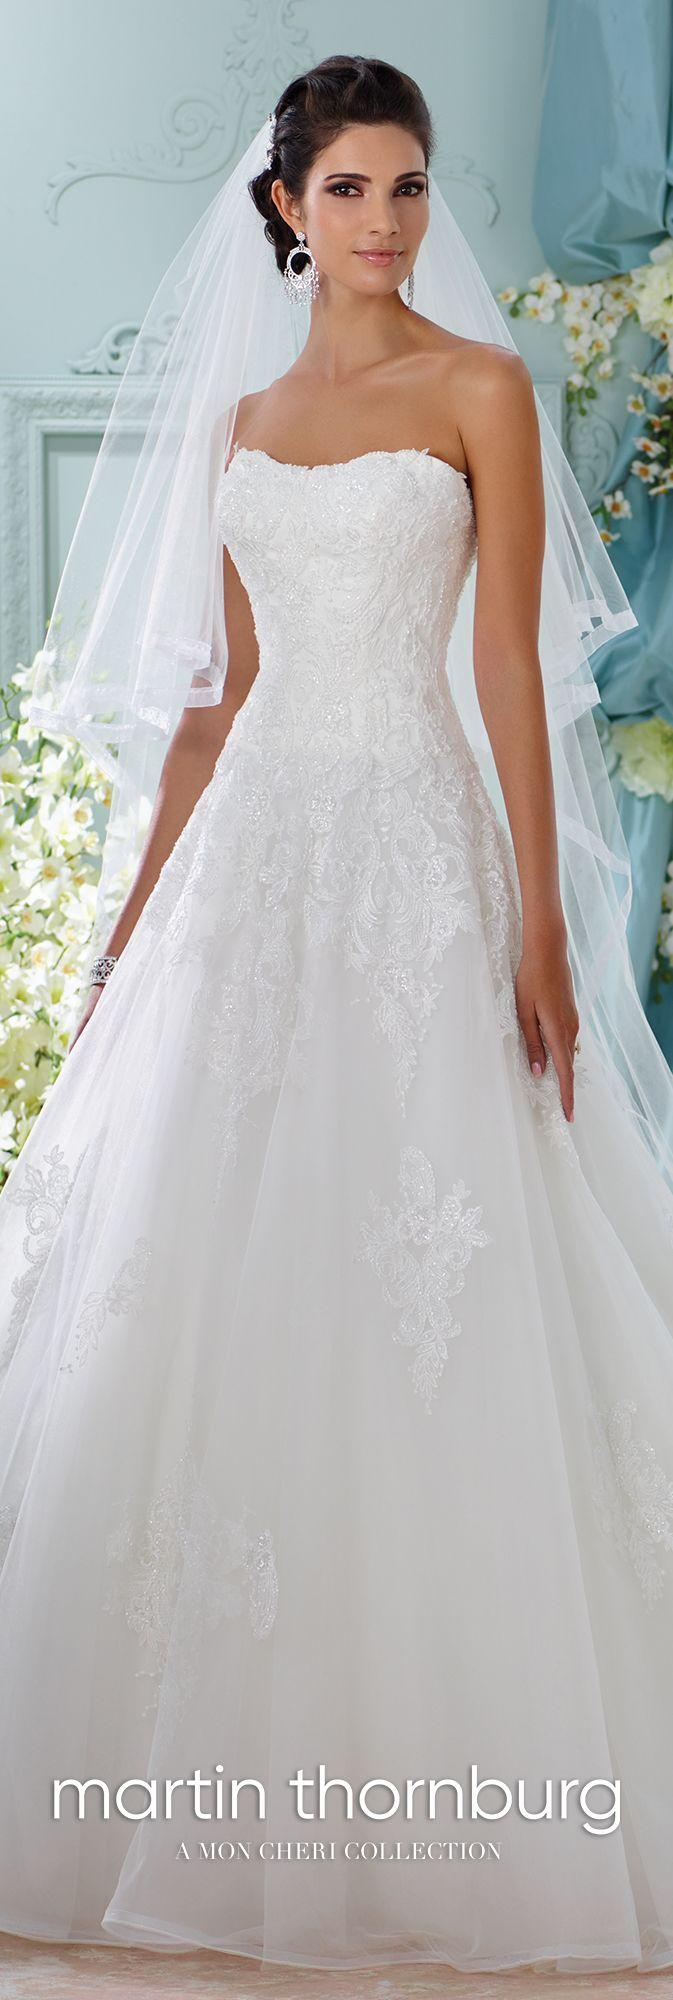 Wedding - Embroidered Strapless A-Line Wedding Dress- 116208 Alesea